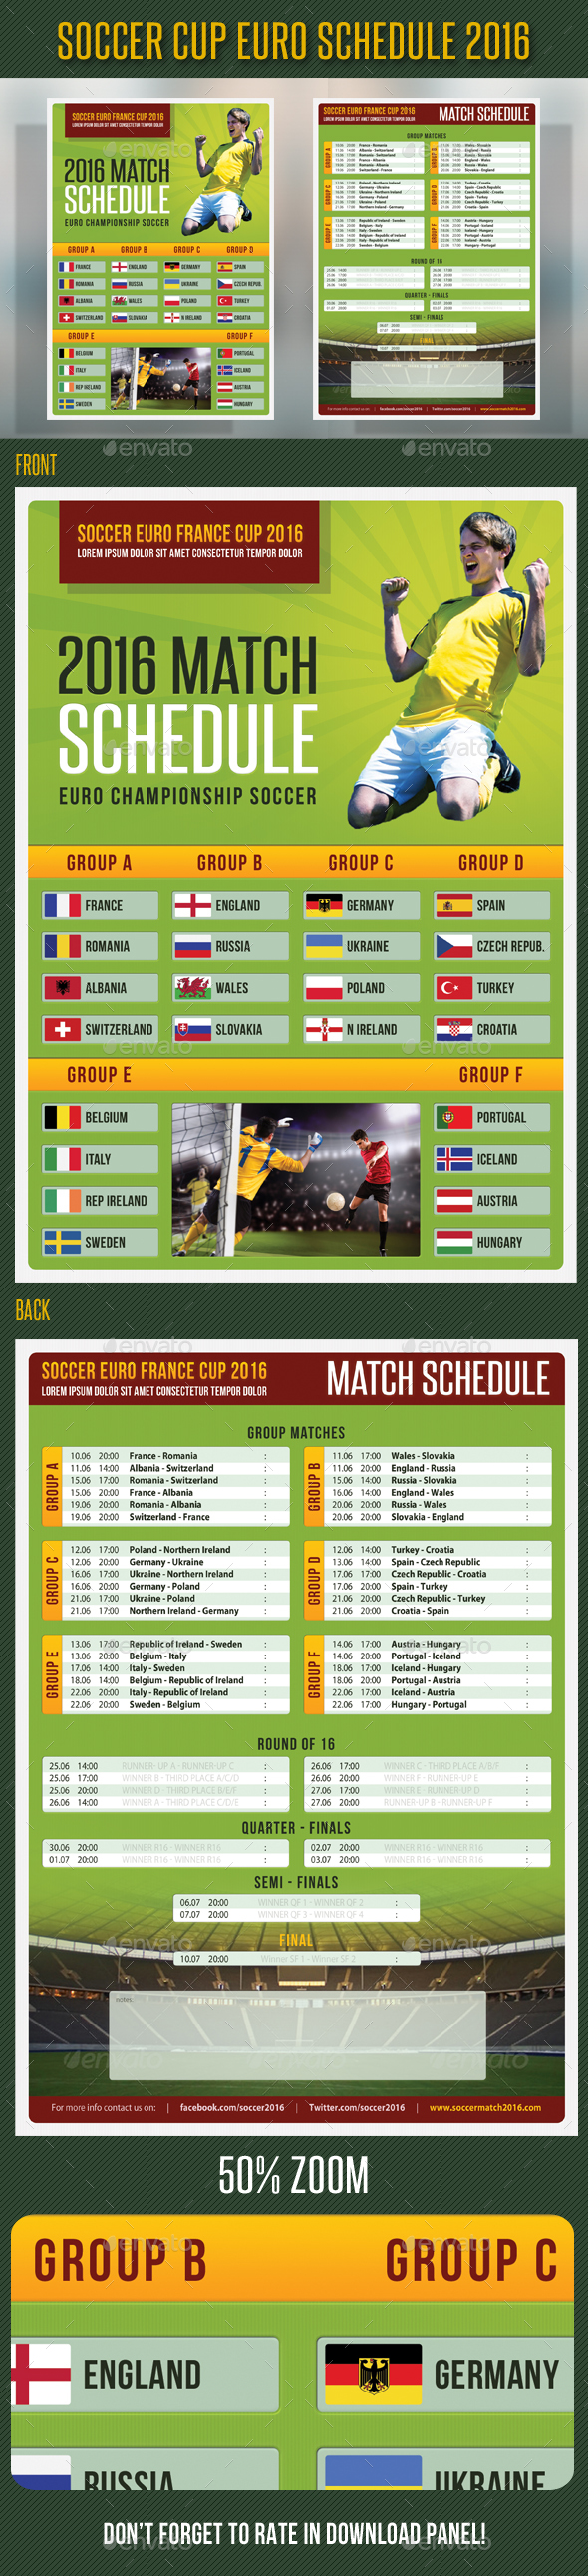 Soccer Cup Euro Schedule 2016 Flyer - Sports Events